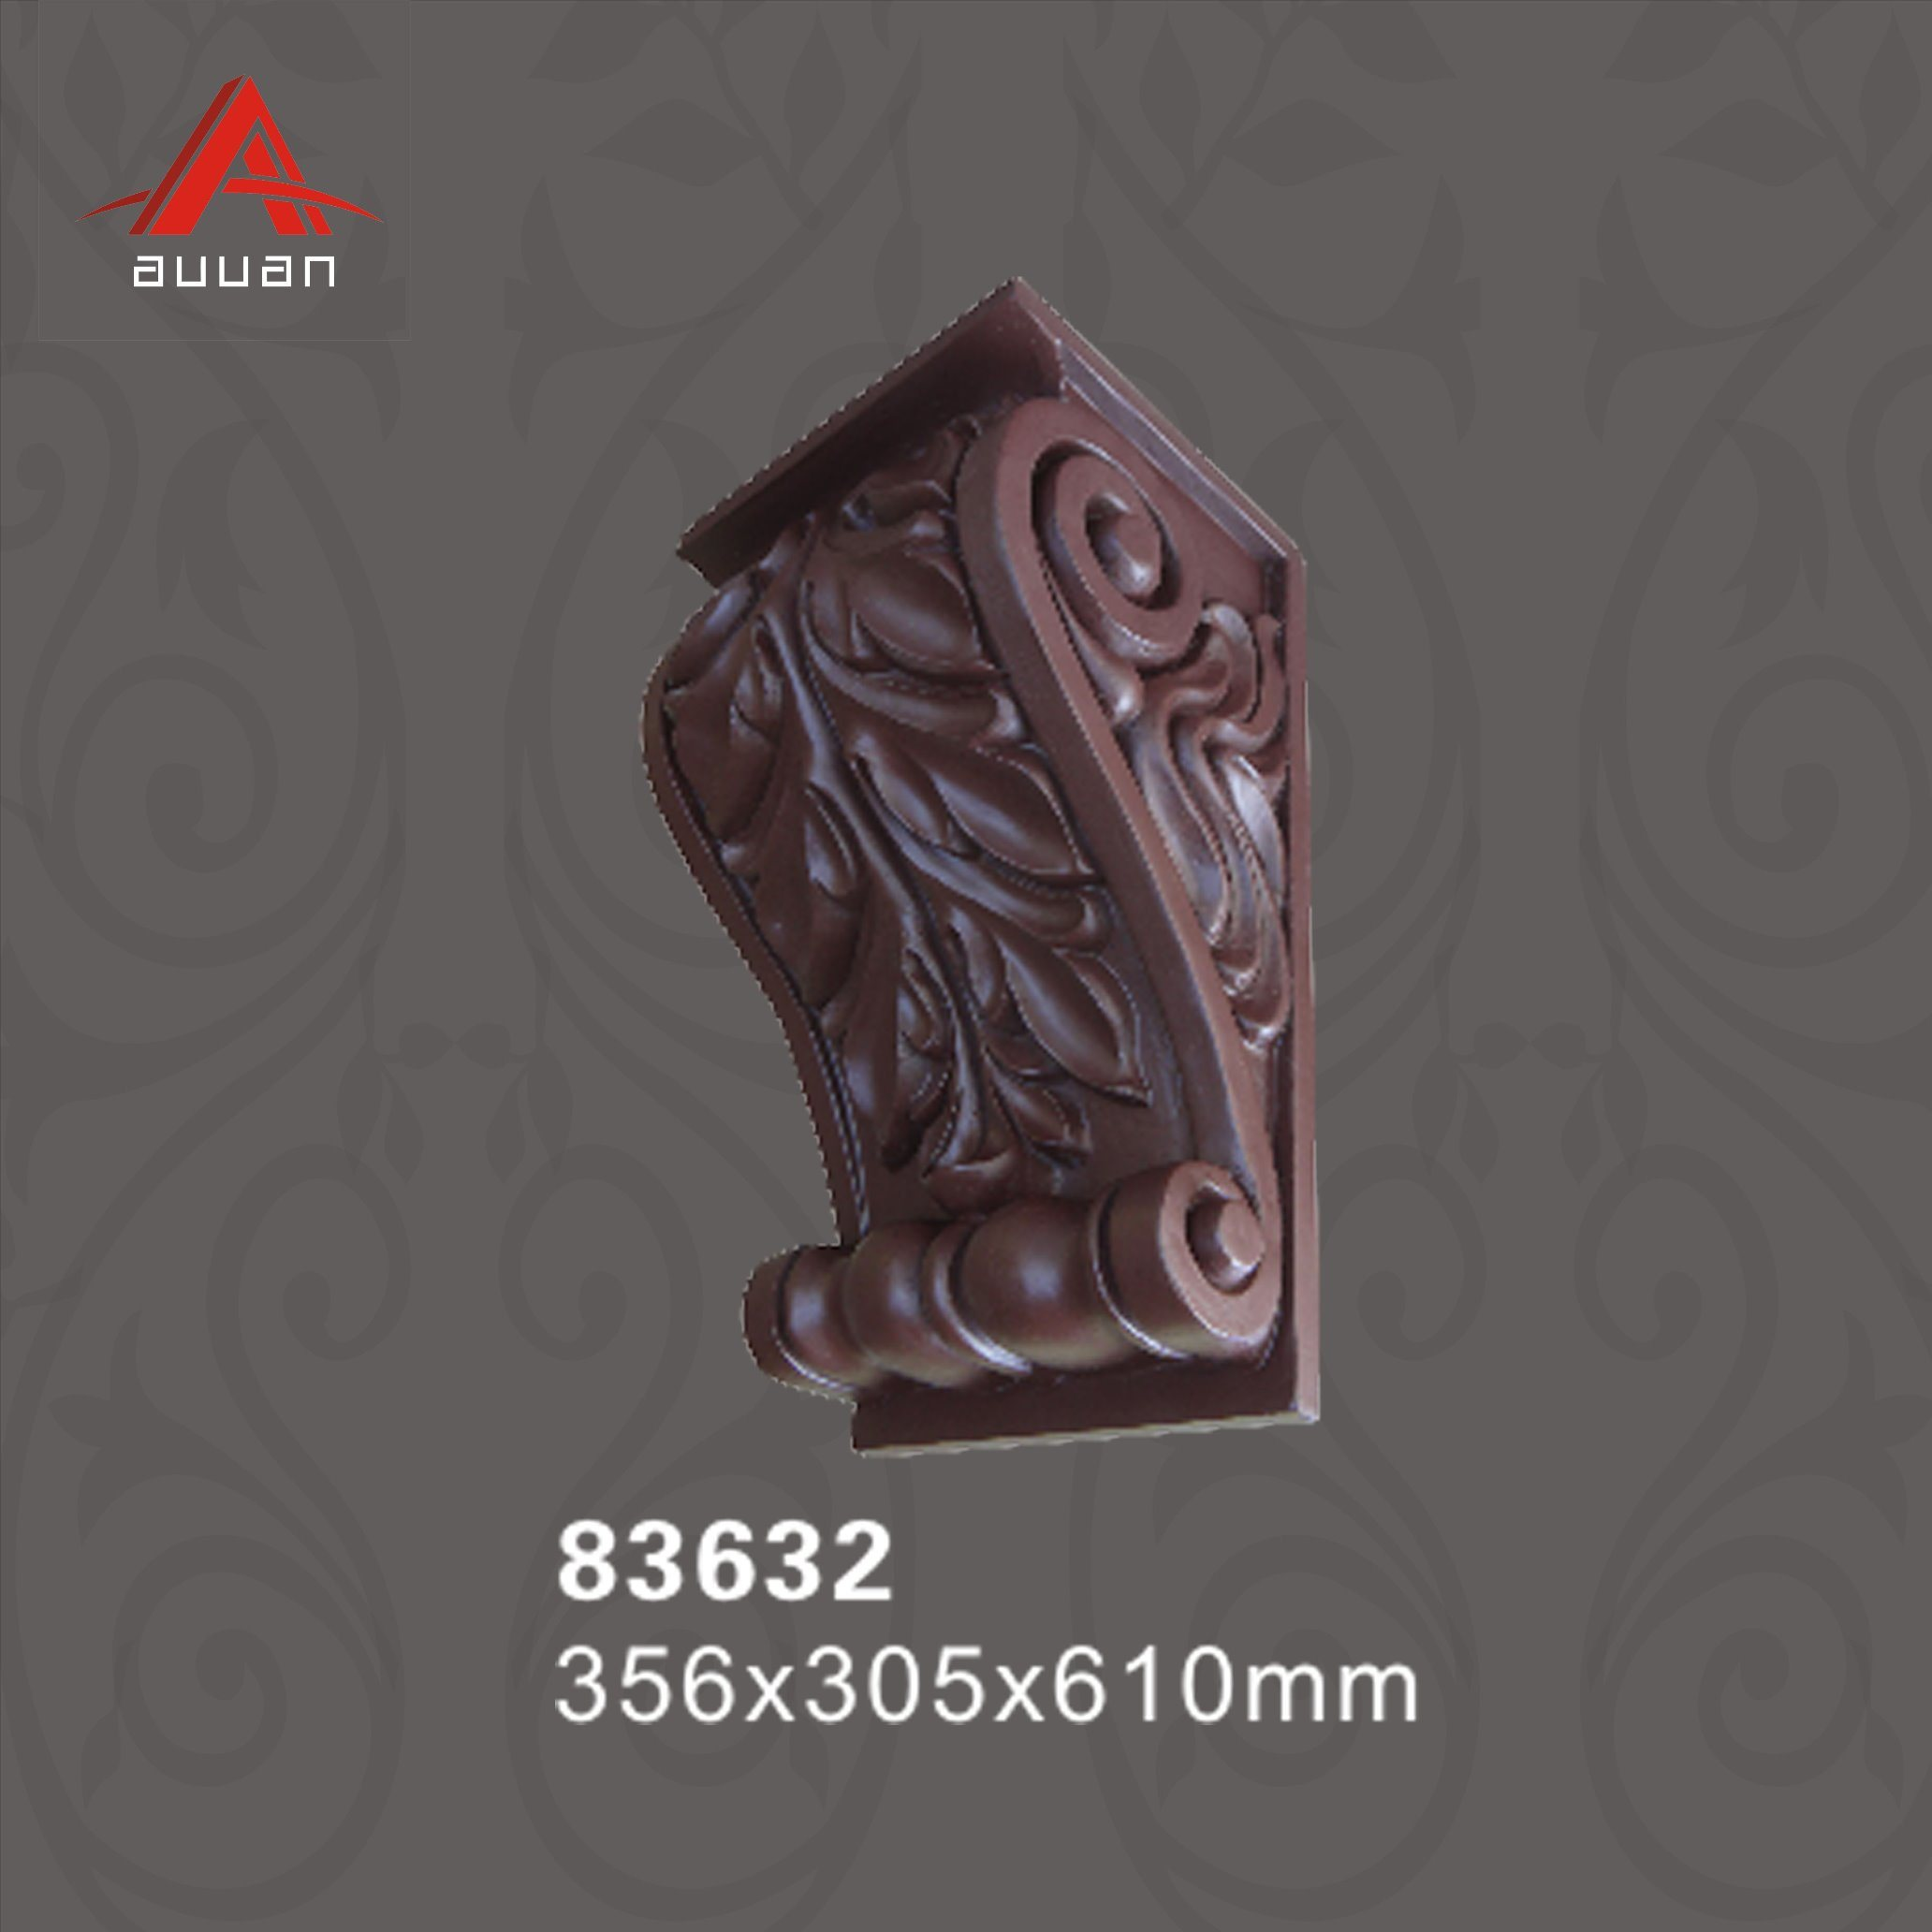 Hot Item 83632 Solid Wood Corbel Hand Carved For Interior Decoration